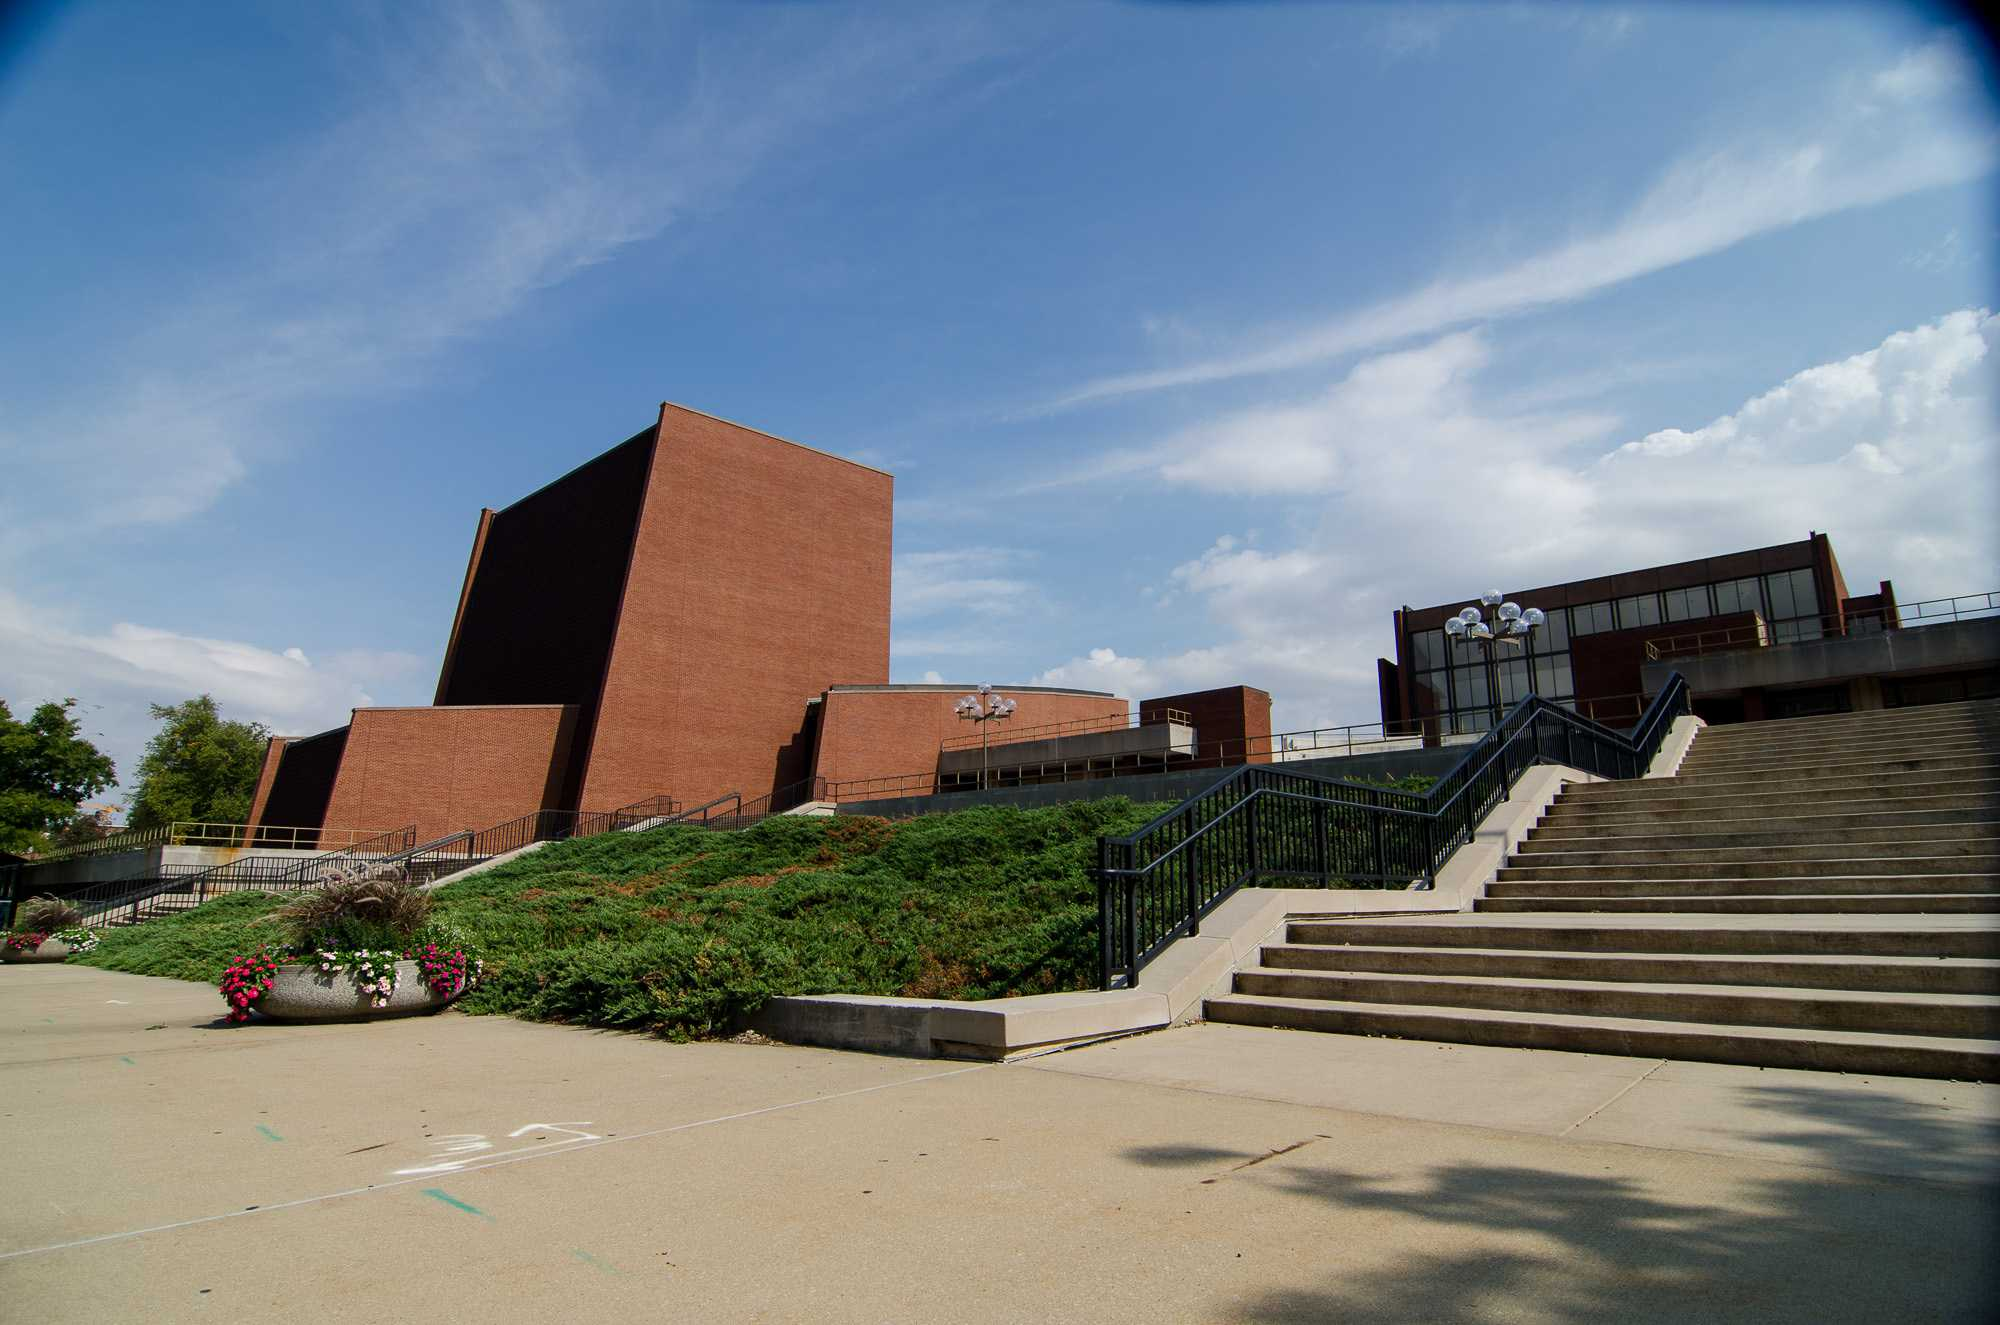 The Krannert Center for Performing Arts was awarded a $20,000 grant from the National Endowment for the Arts. Out of 1,728 applicants, only 1,029 were awarded funds.